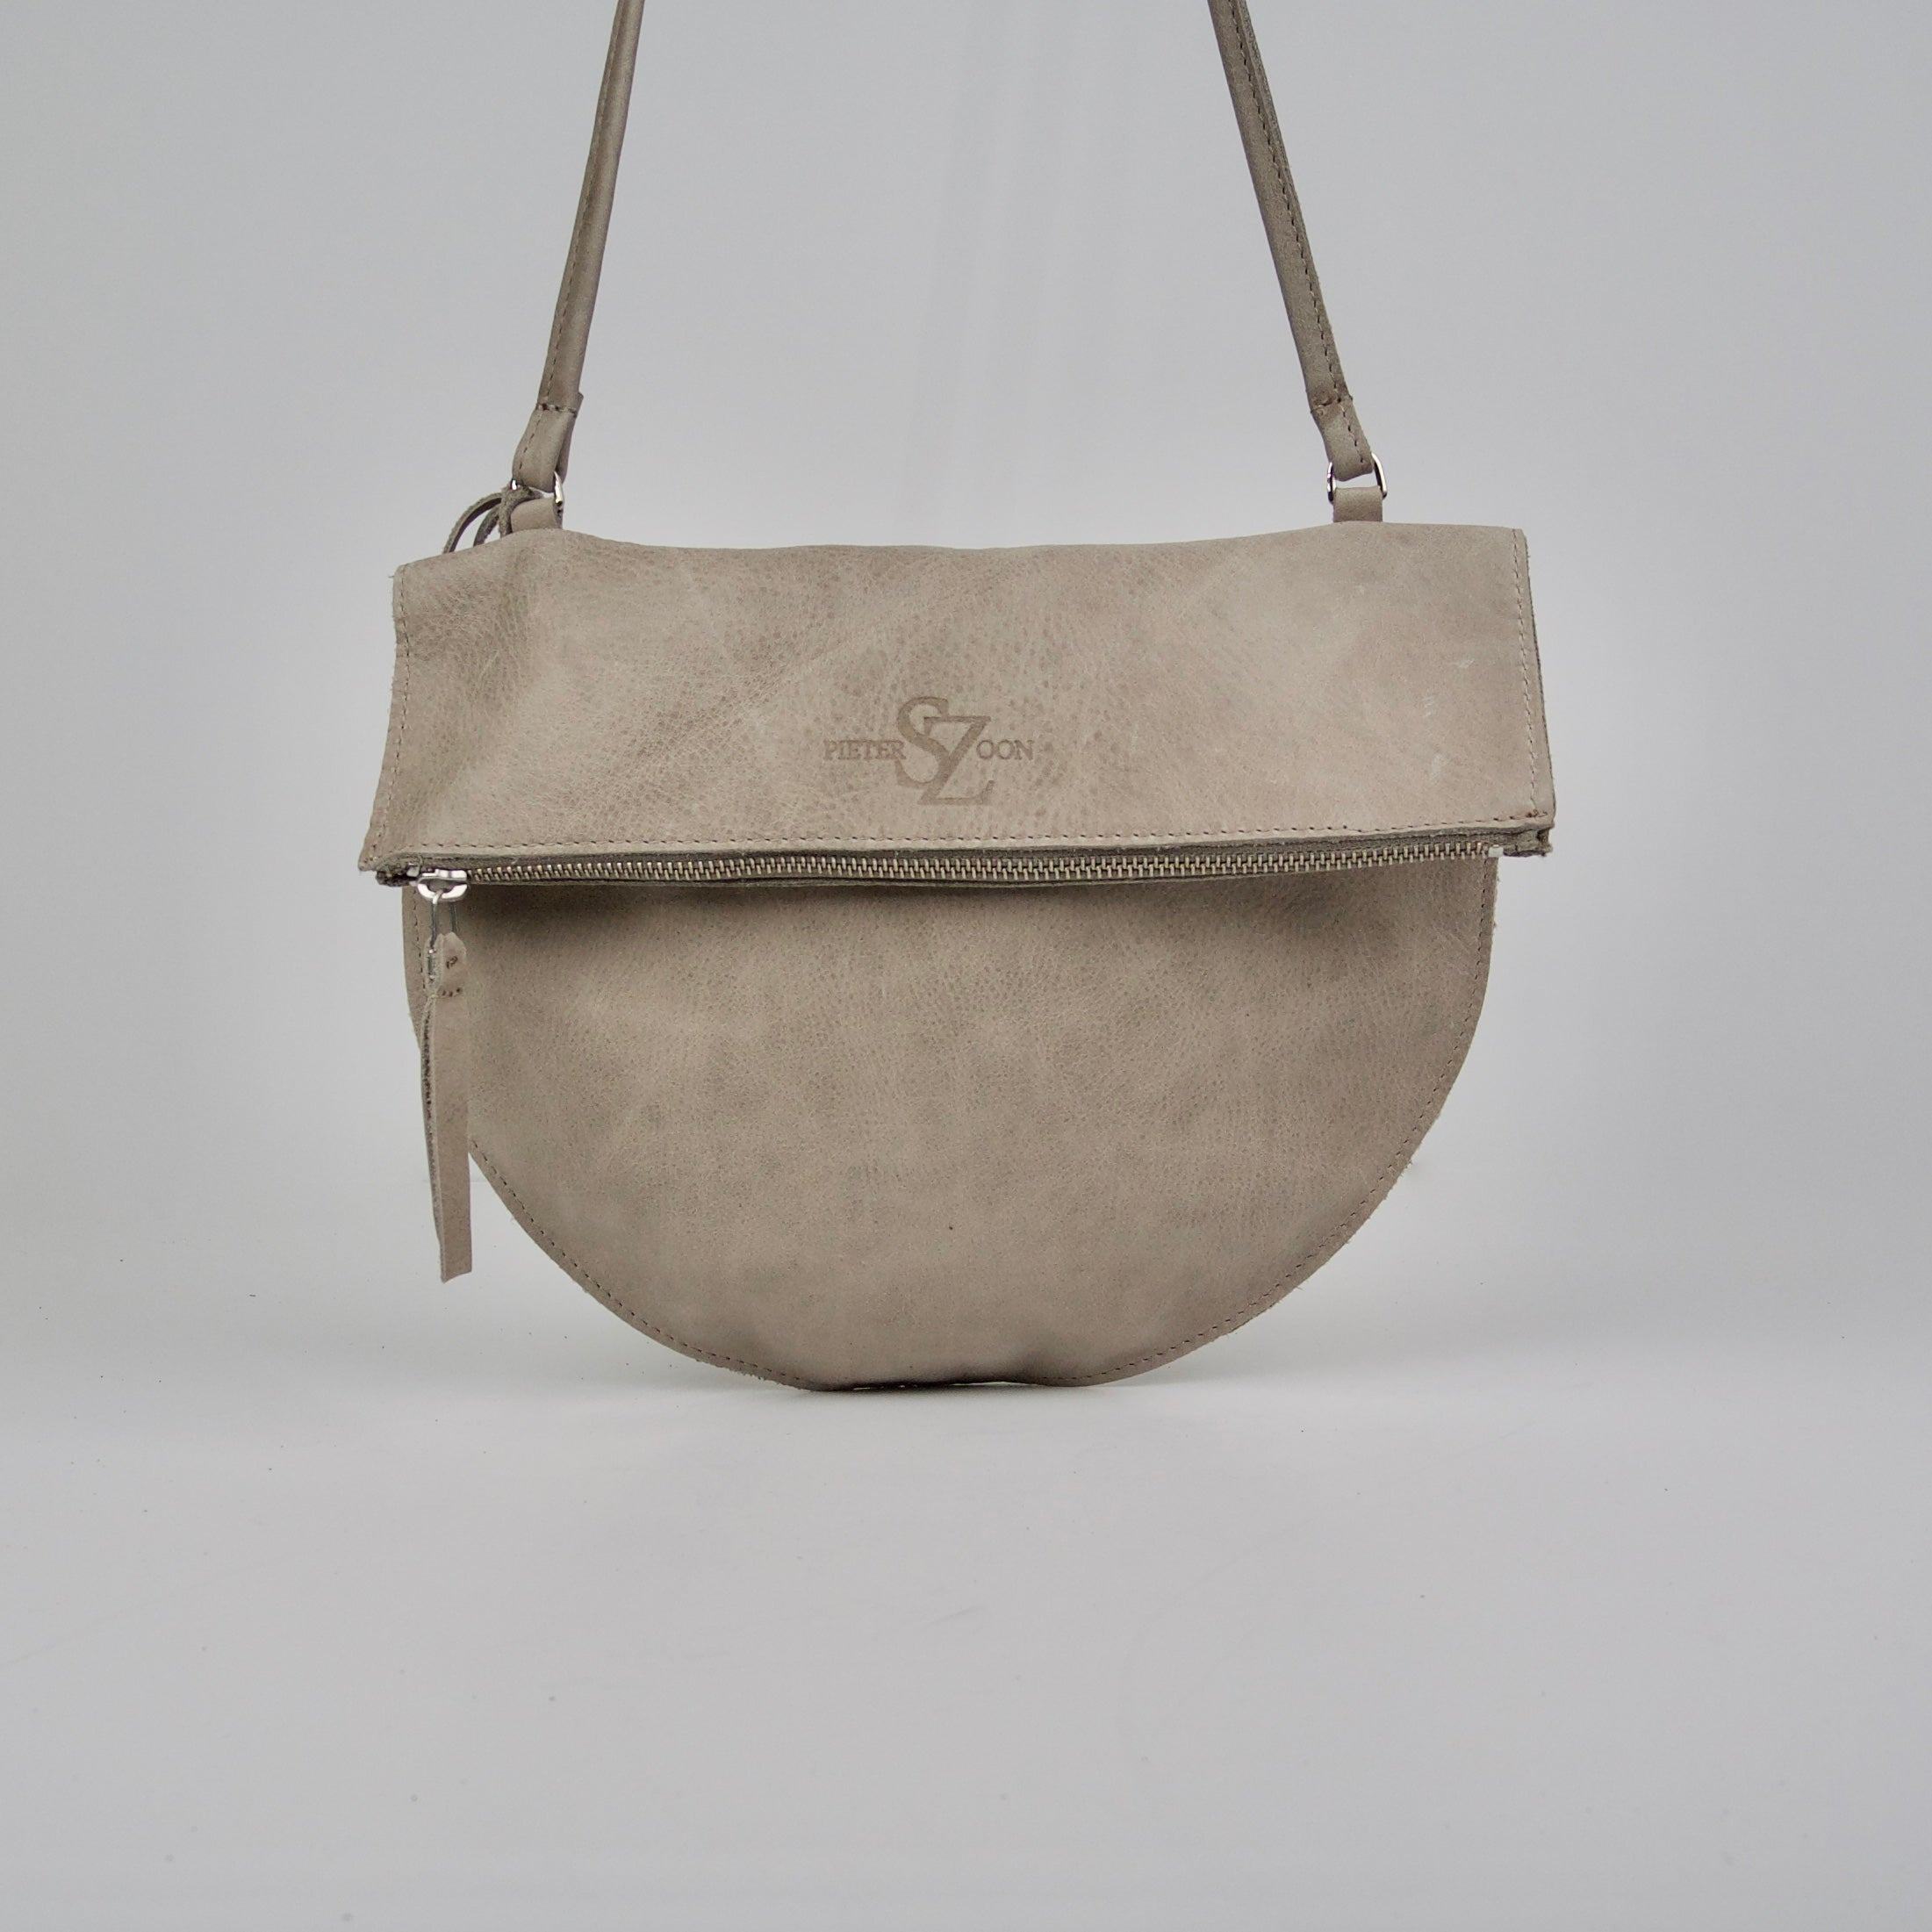 27f242111542 MARILLA CUPBOARD LARGE shoulder bag handmade leather pieterszoon.com